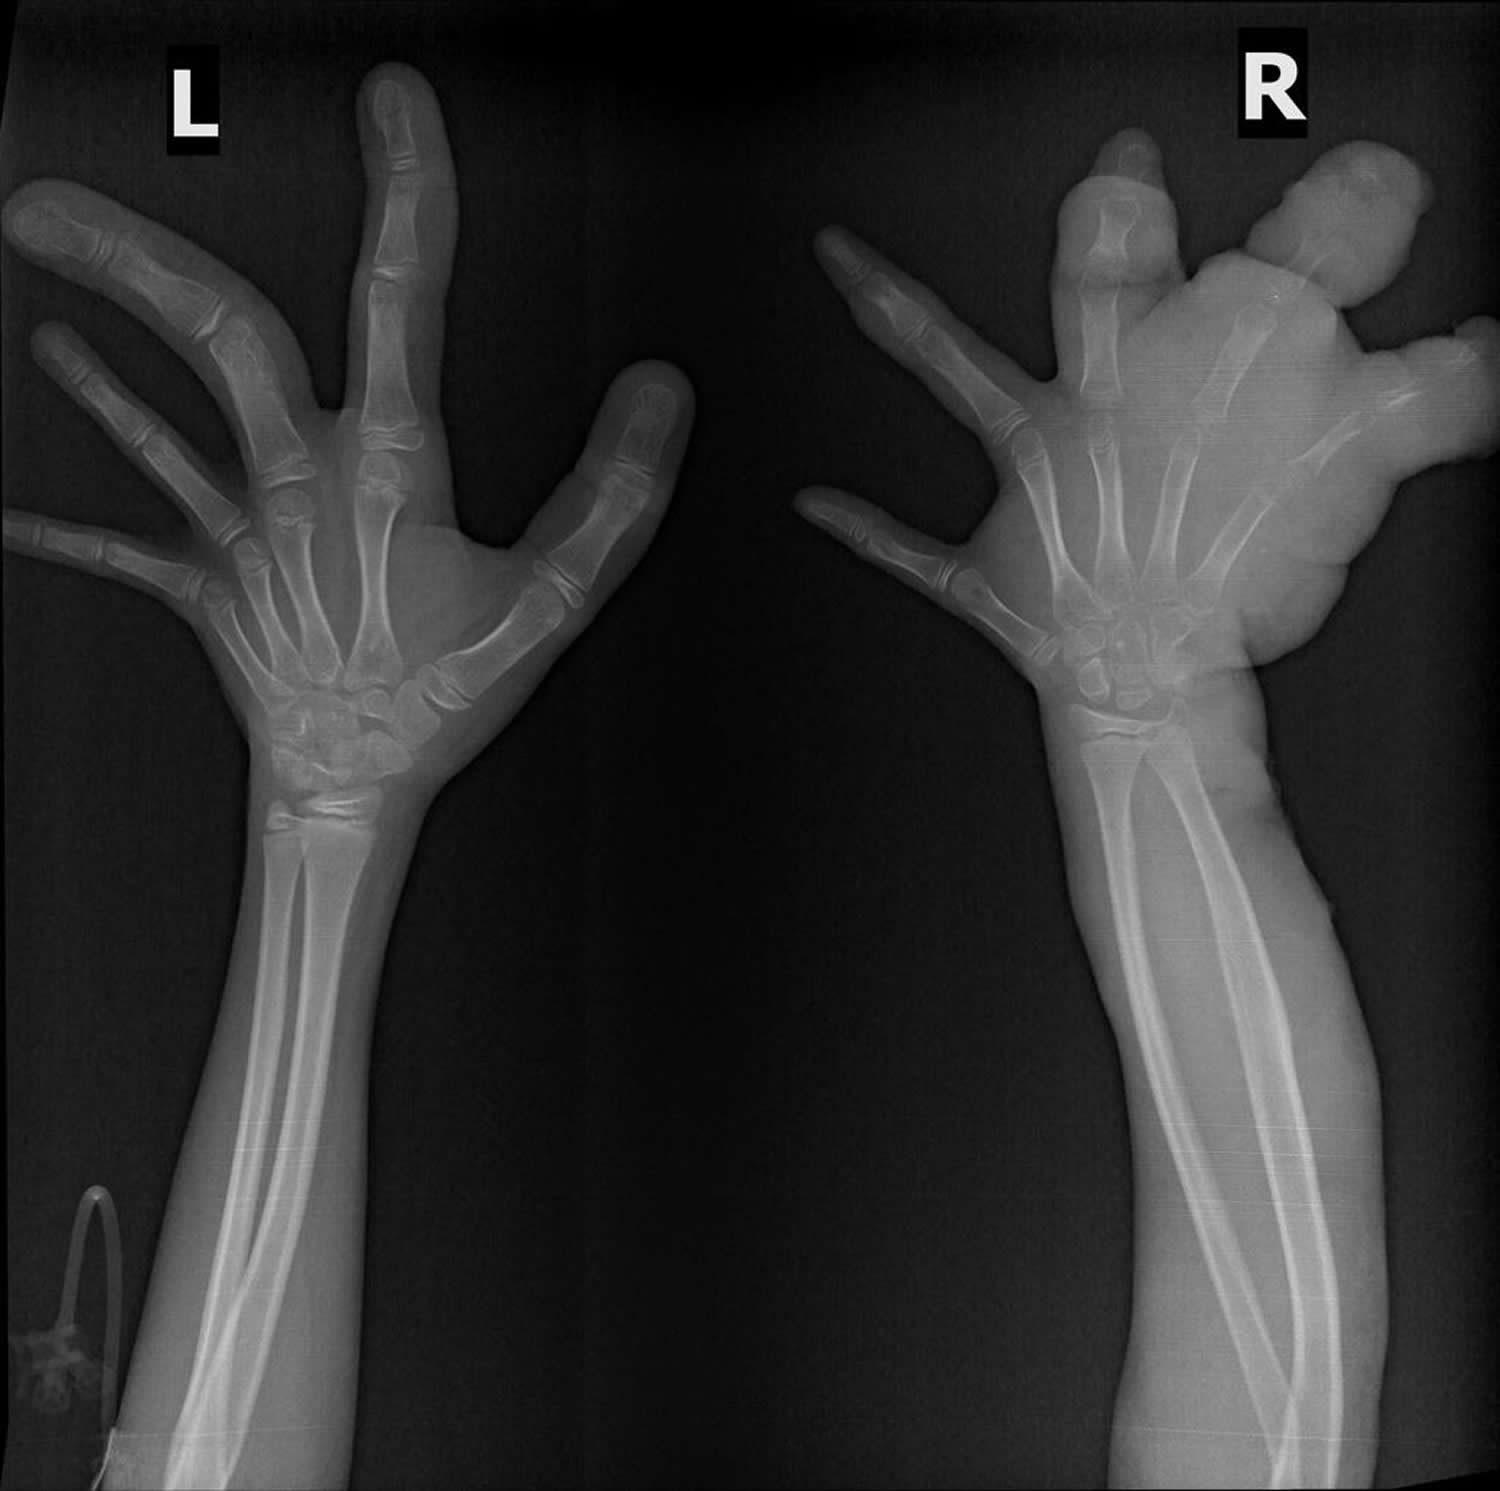 Klippel-Trenaunay syndrome plain x-ray of both arms showing overgrowth of bone and soft tissue seen in the hands bilaterally